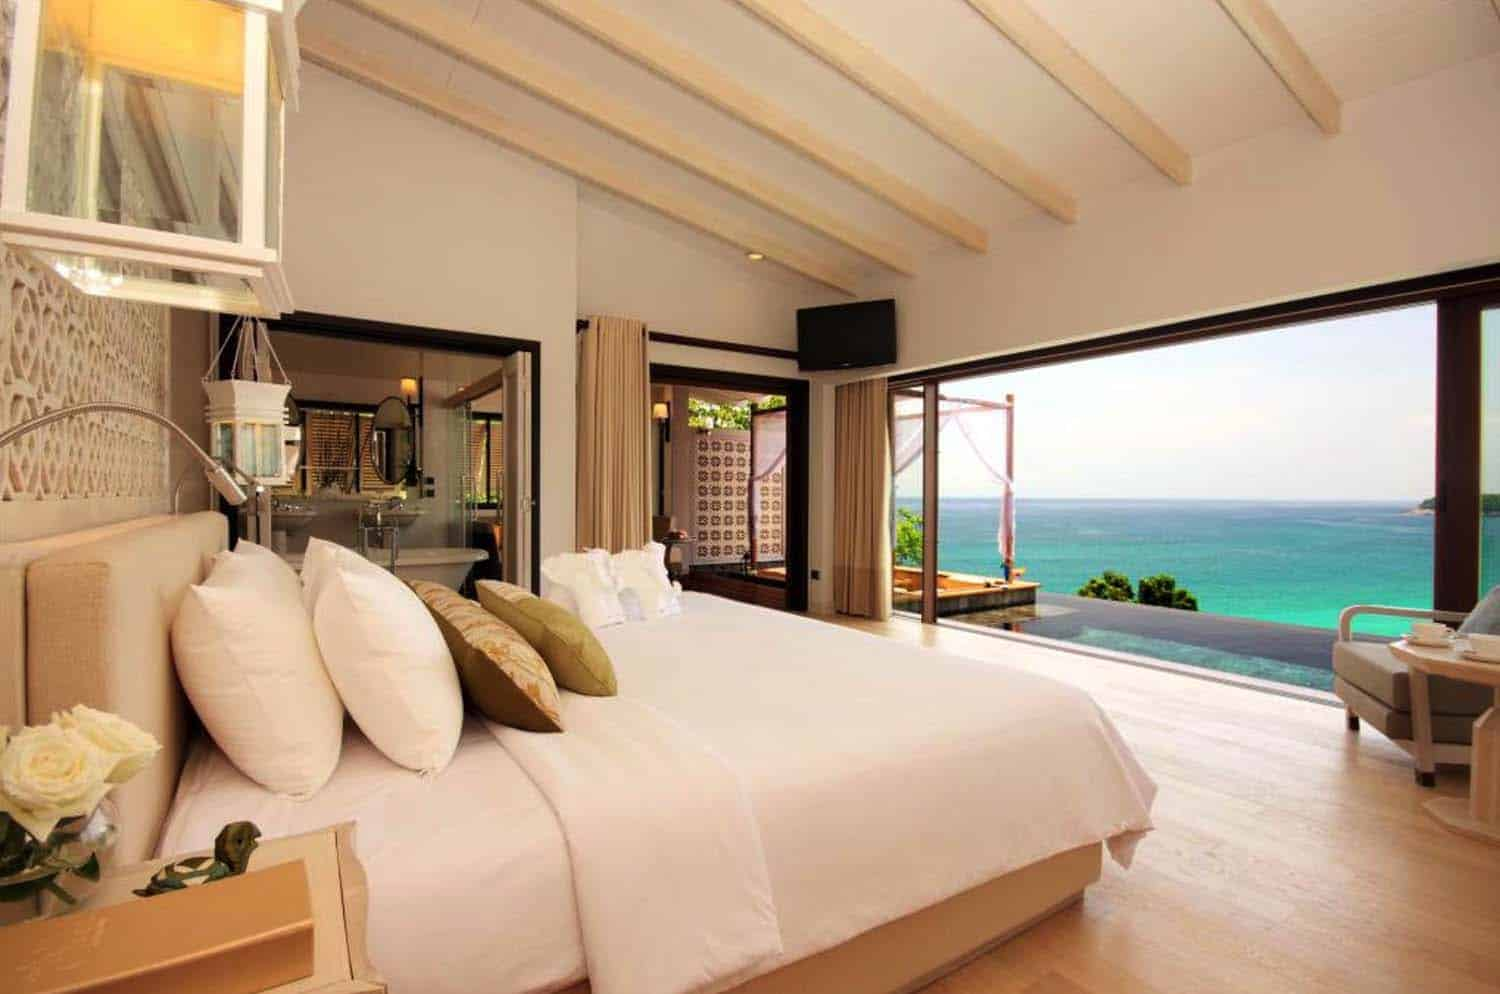 Bedroom With Ocean Views-26-1 Kindesign